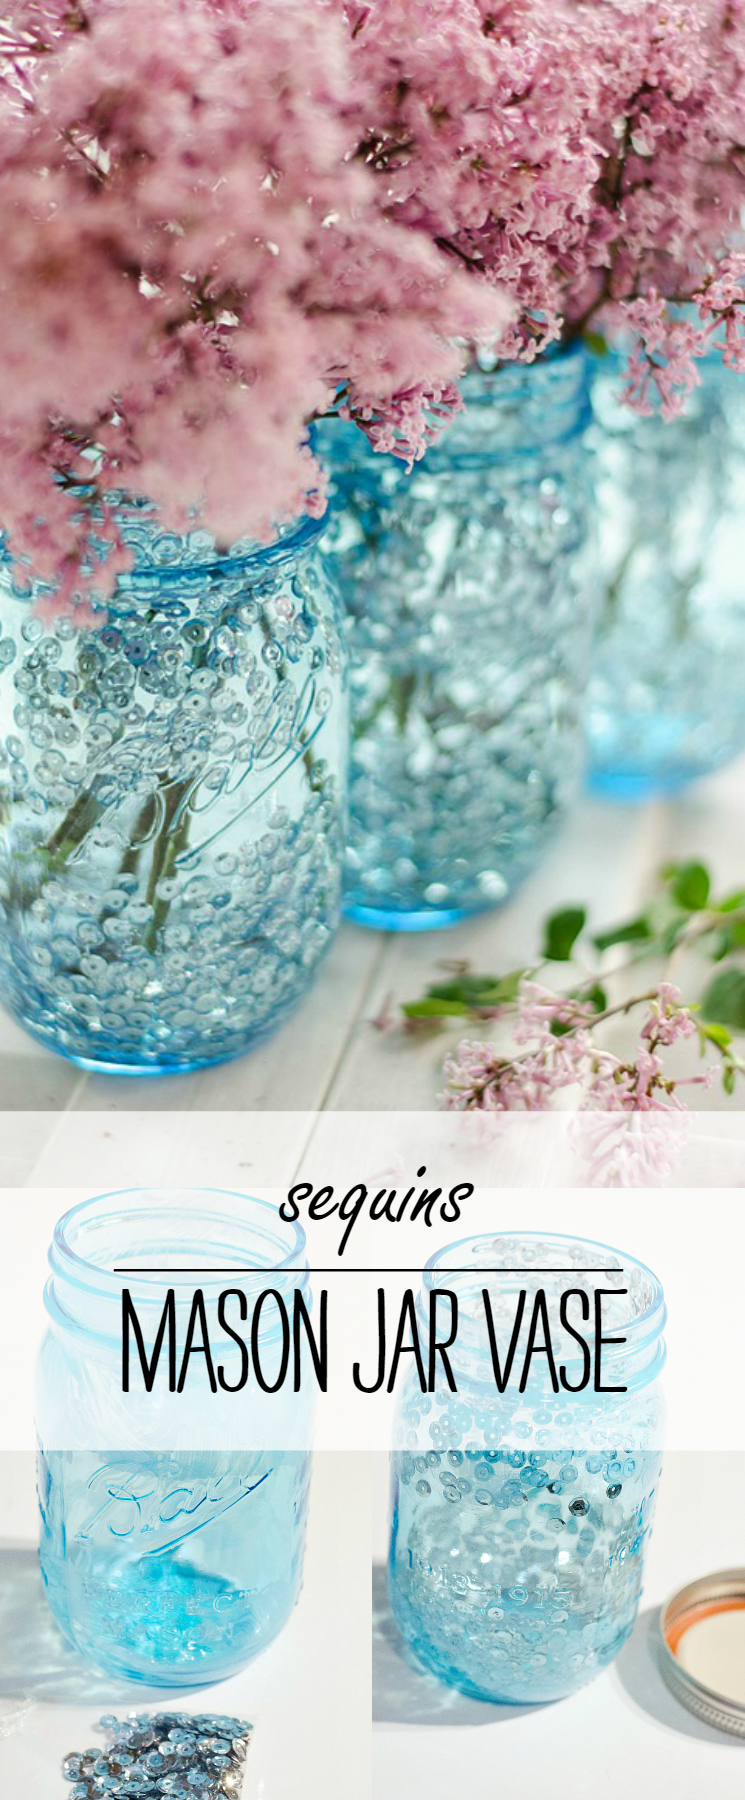 Centerpiece Ideas for Weddings Using Mason Jars